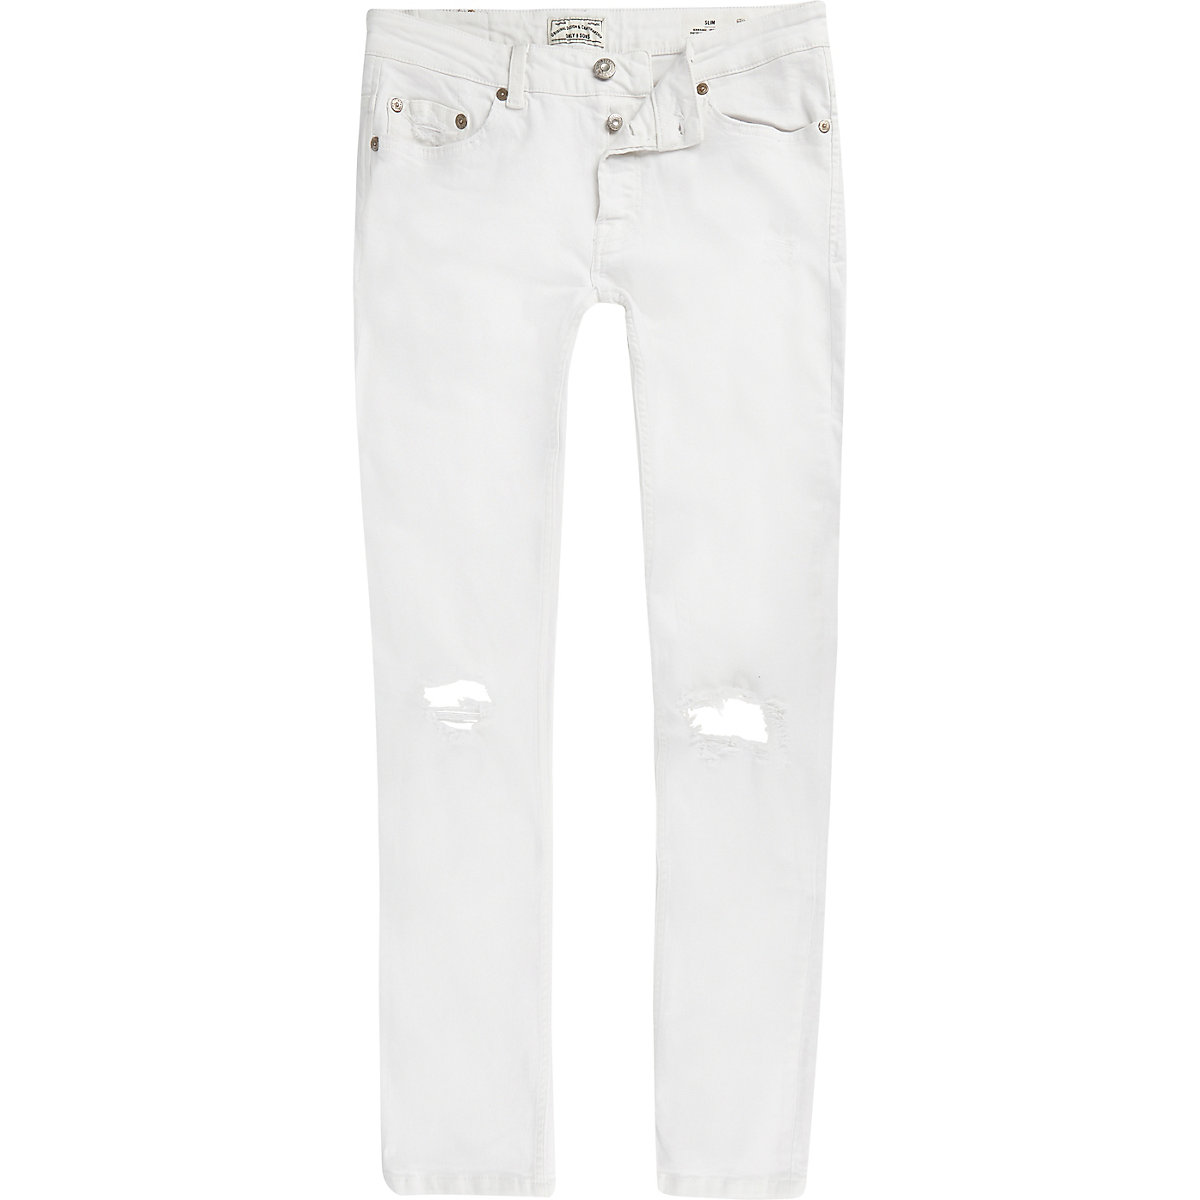 Only & Sons white ripped slim fit jeans